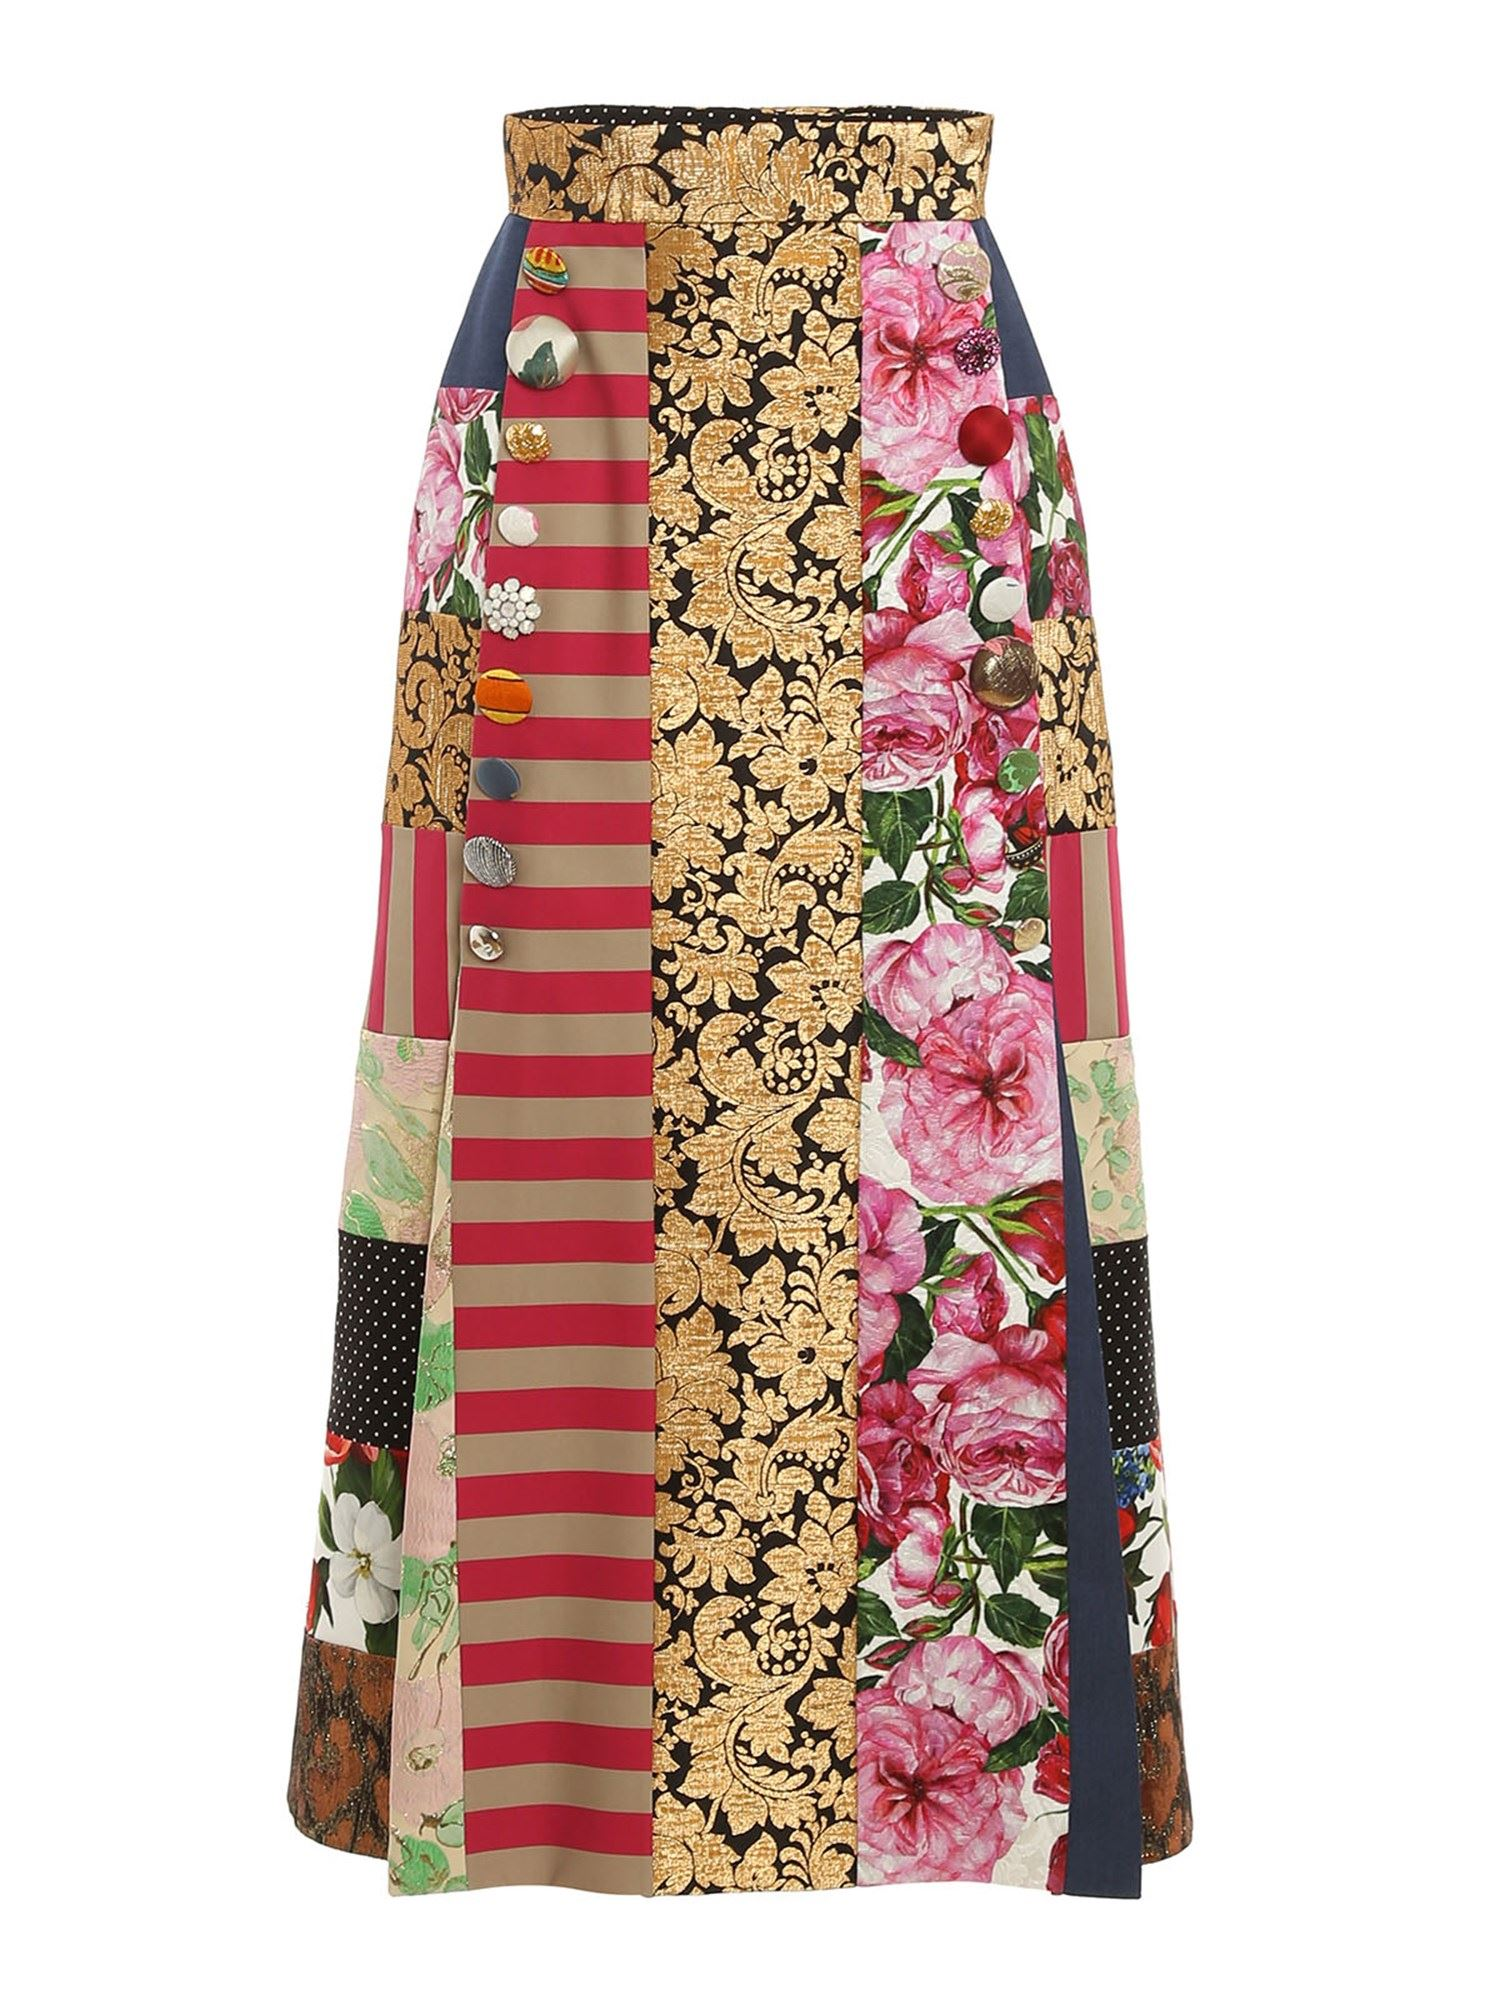 Dolce & Gabbana PATCHWORK PATTERNED SKIRT IN MULTICOLOR